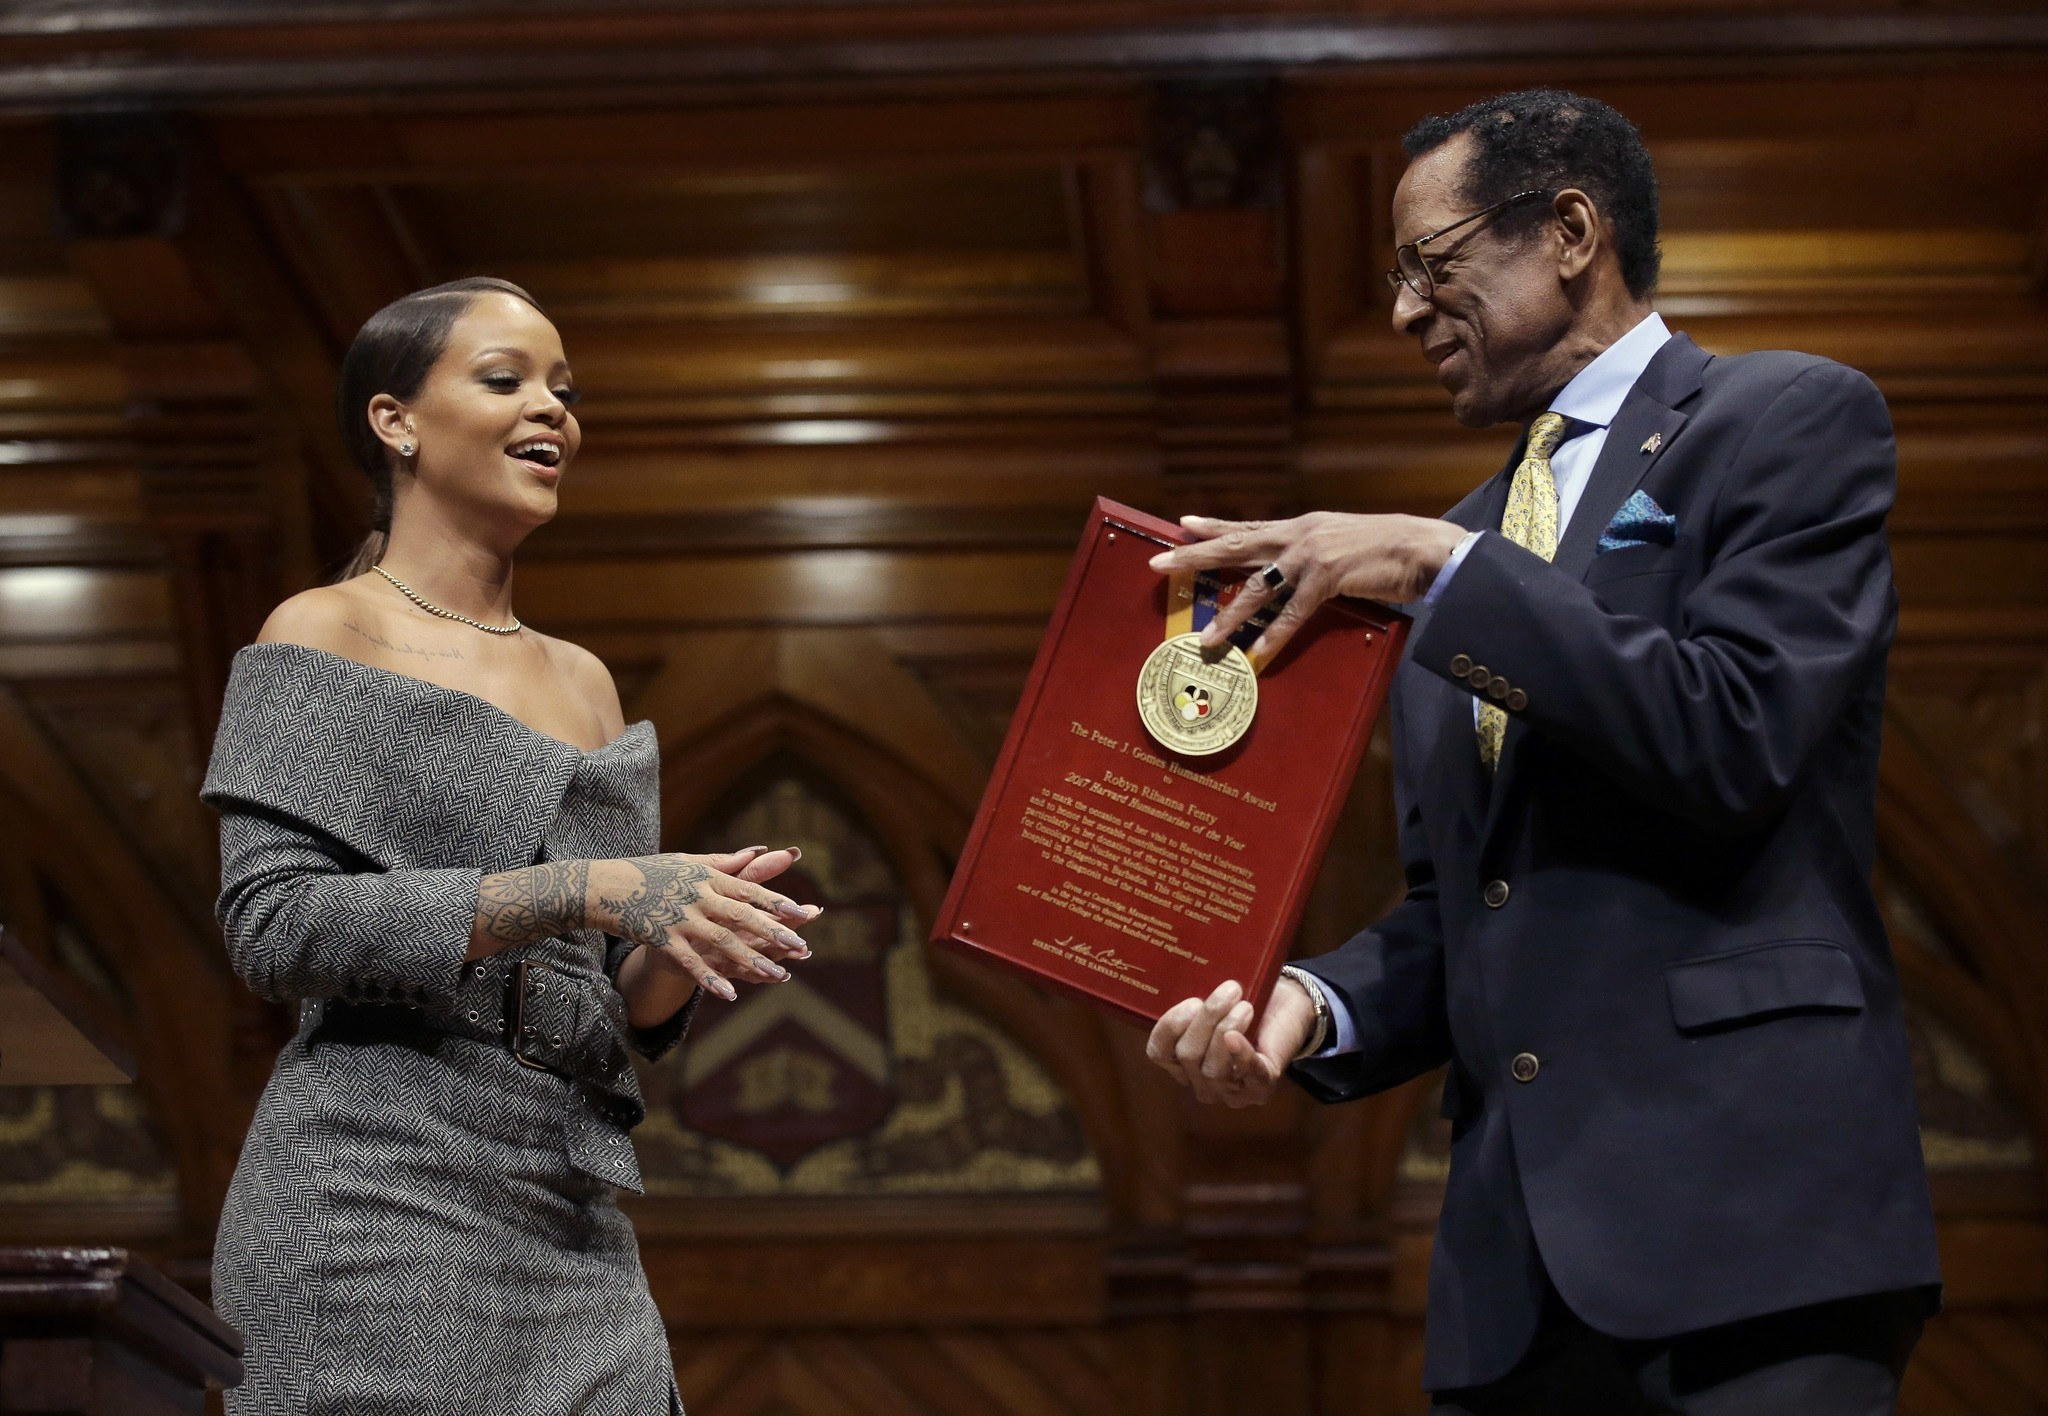 Rihanna is presented with the 2017 Harvard University Humanitarian of the Year Award by Allen Counter, director of the Harvard Foundation, Tuesday, Feb. 28, 2017. (AP Photo)